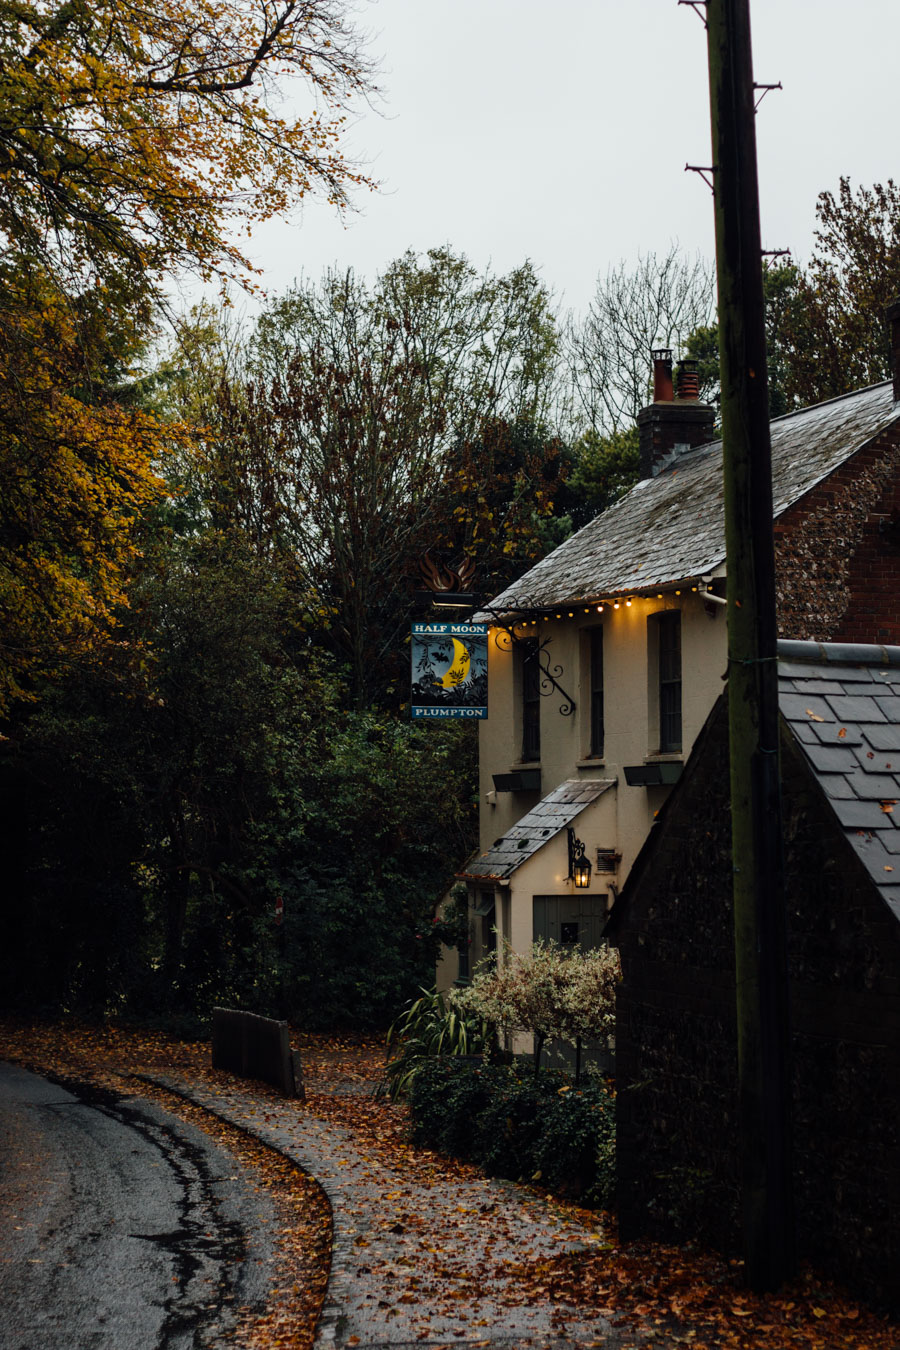 country pub in the autumn